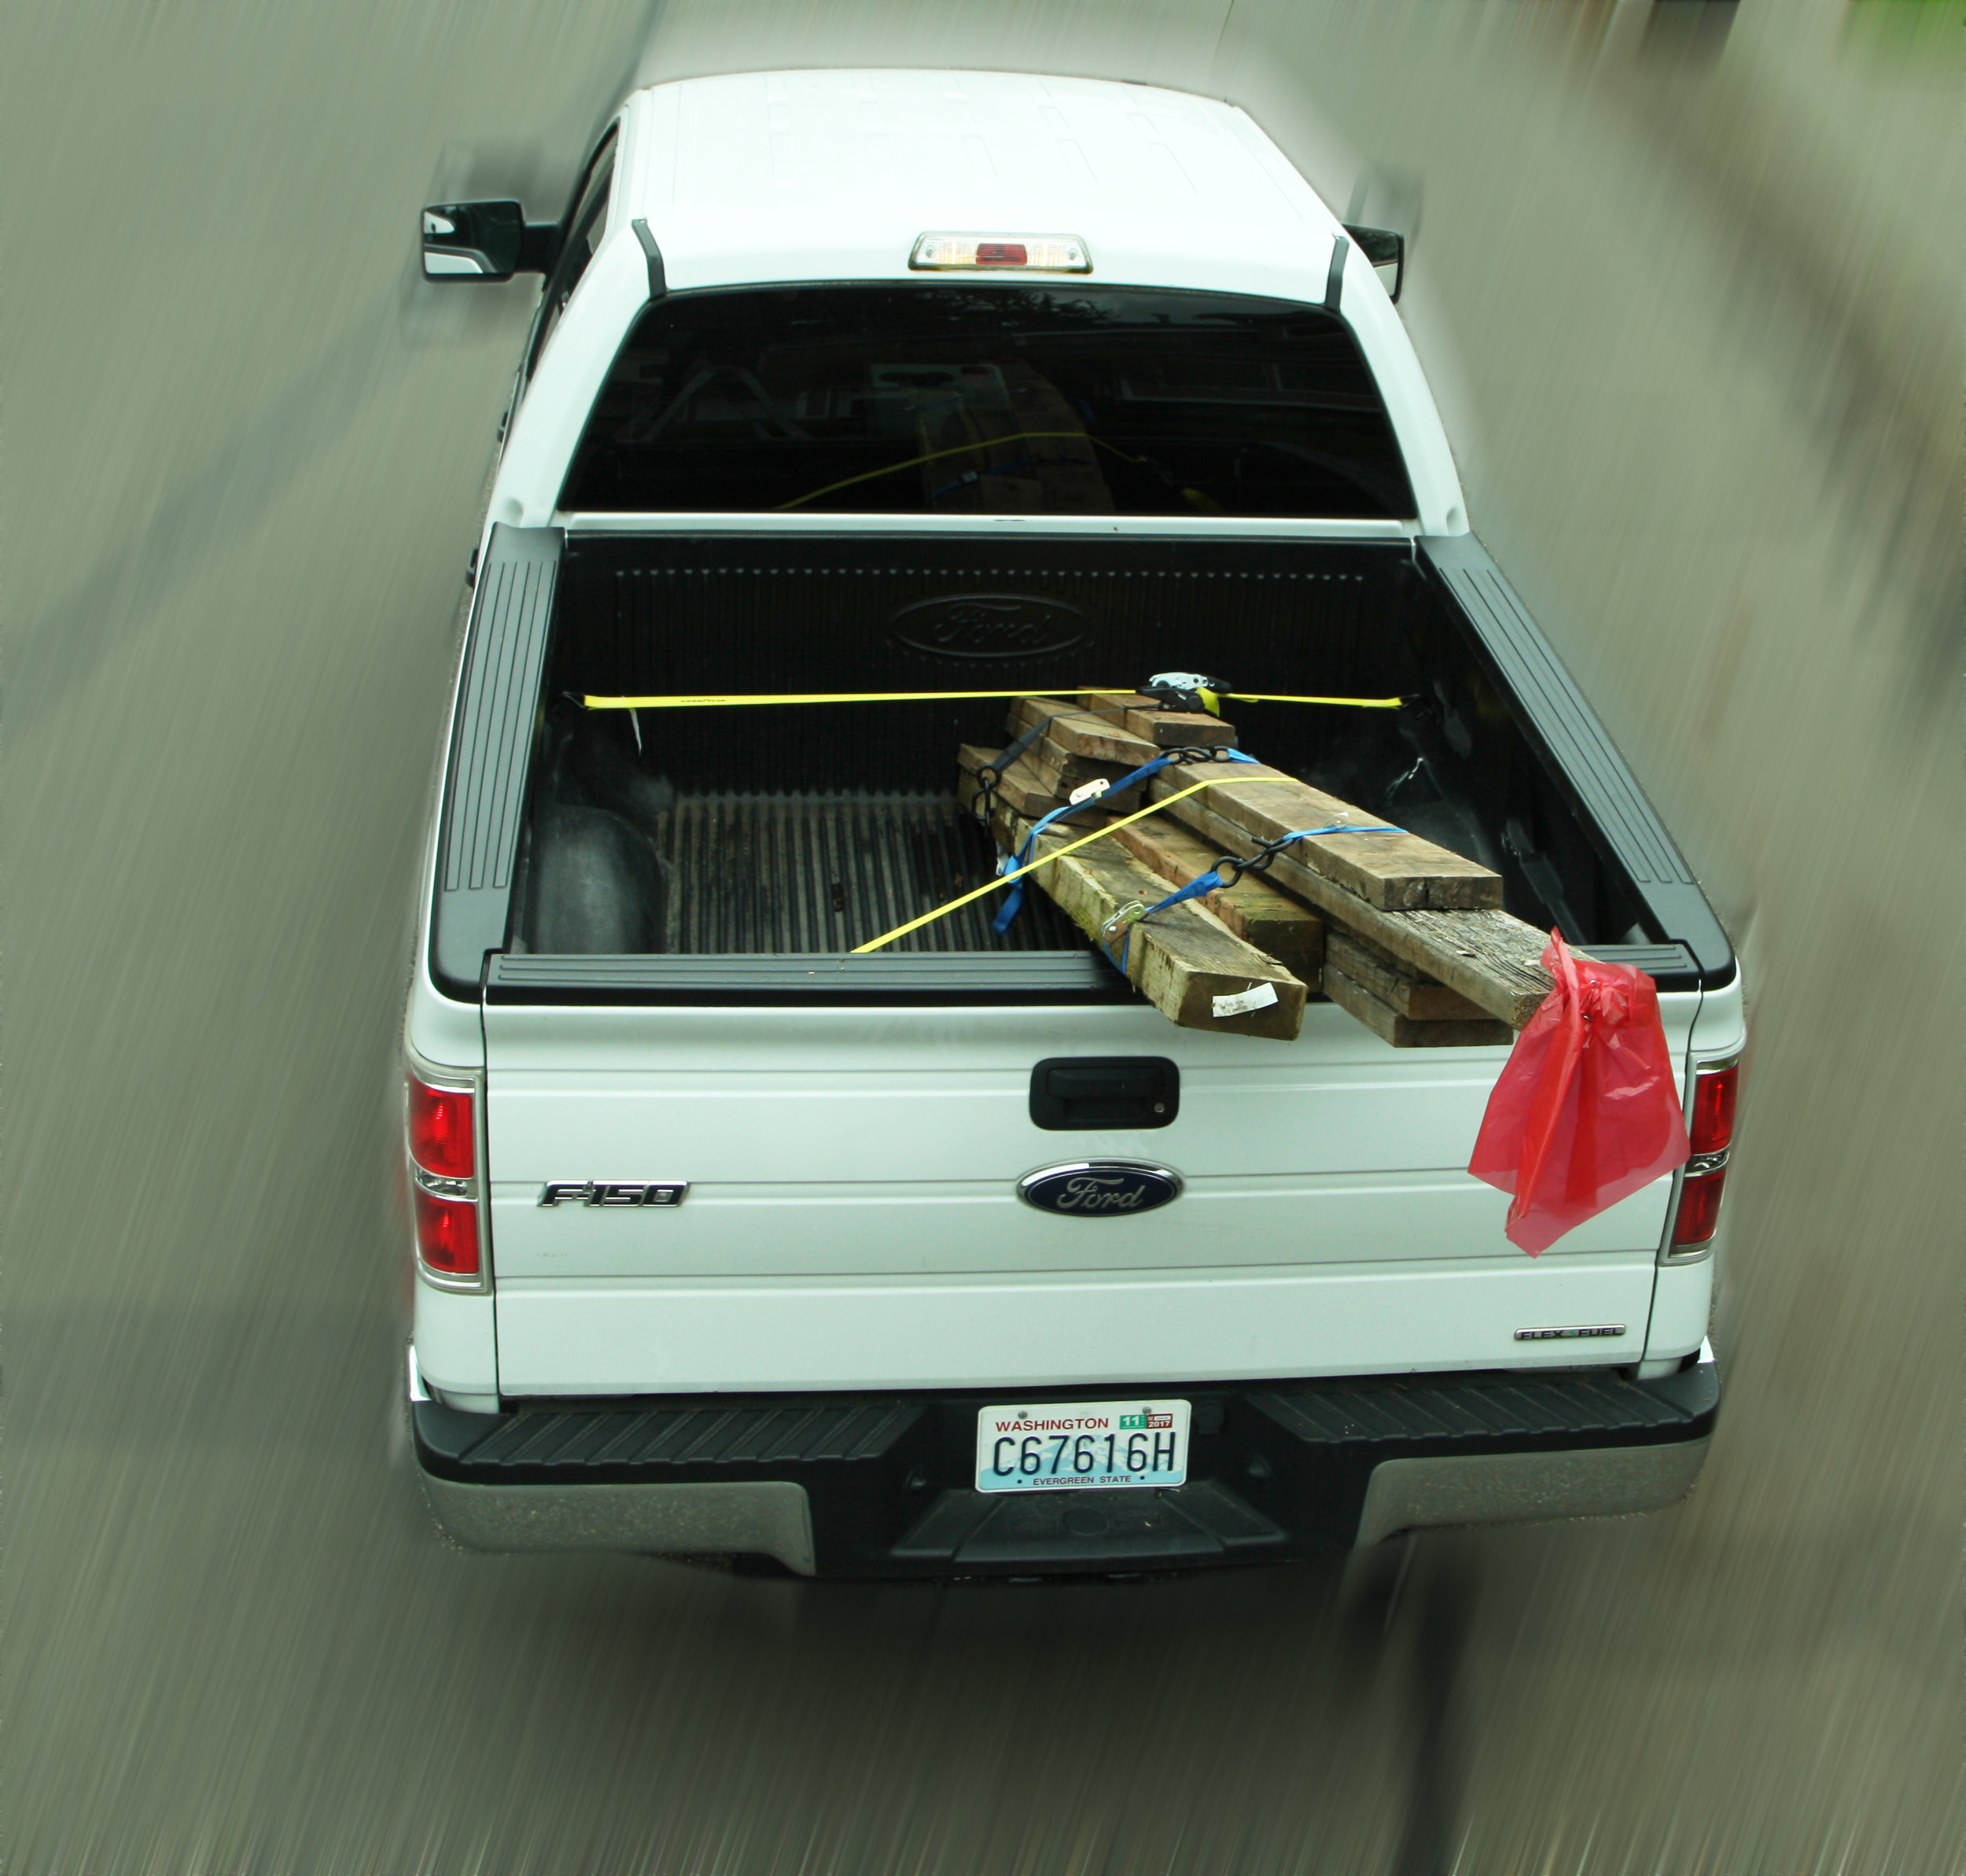 All corners of a load should be tagged with red flags (one foot by one foot), if the load extends four feet beyond the bed of a truck or trailer